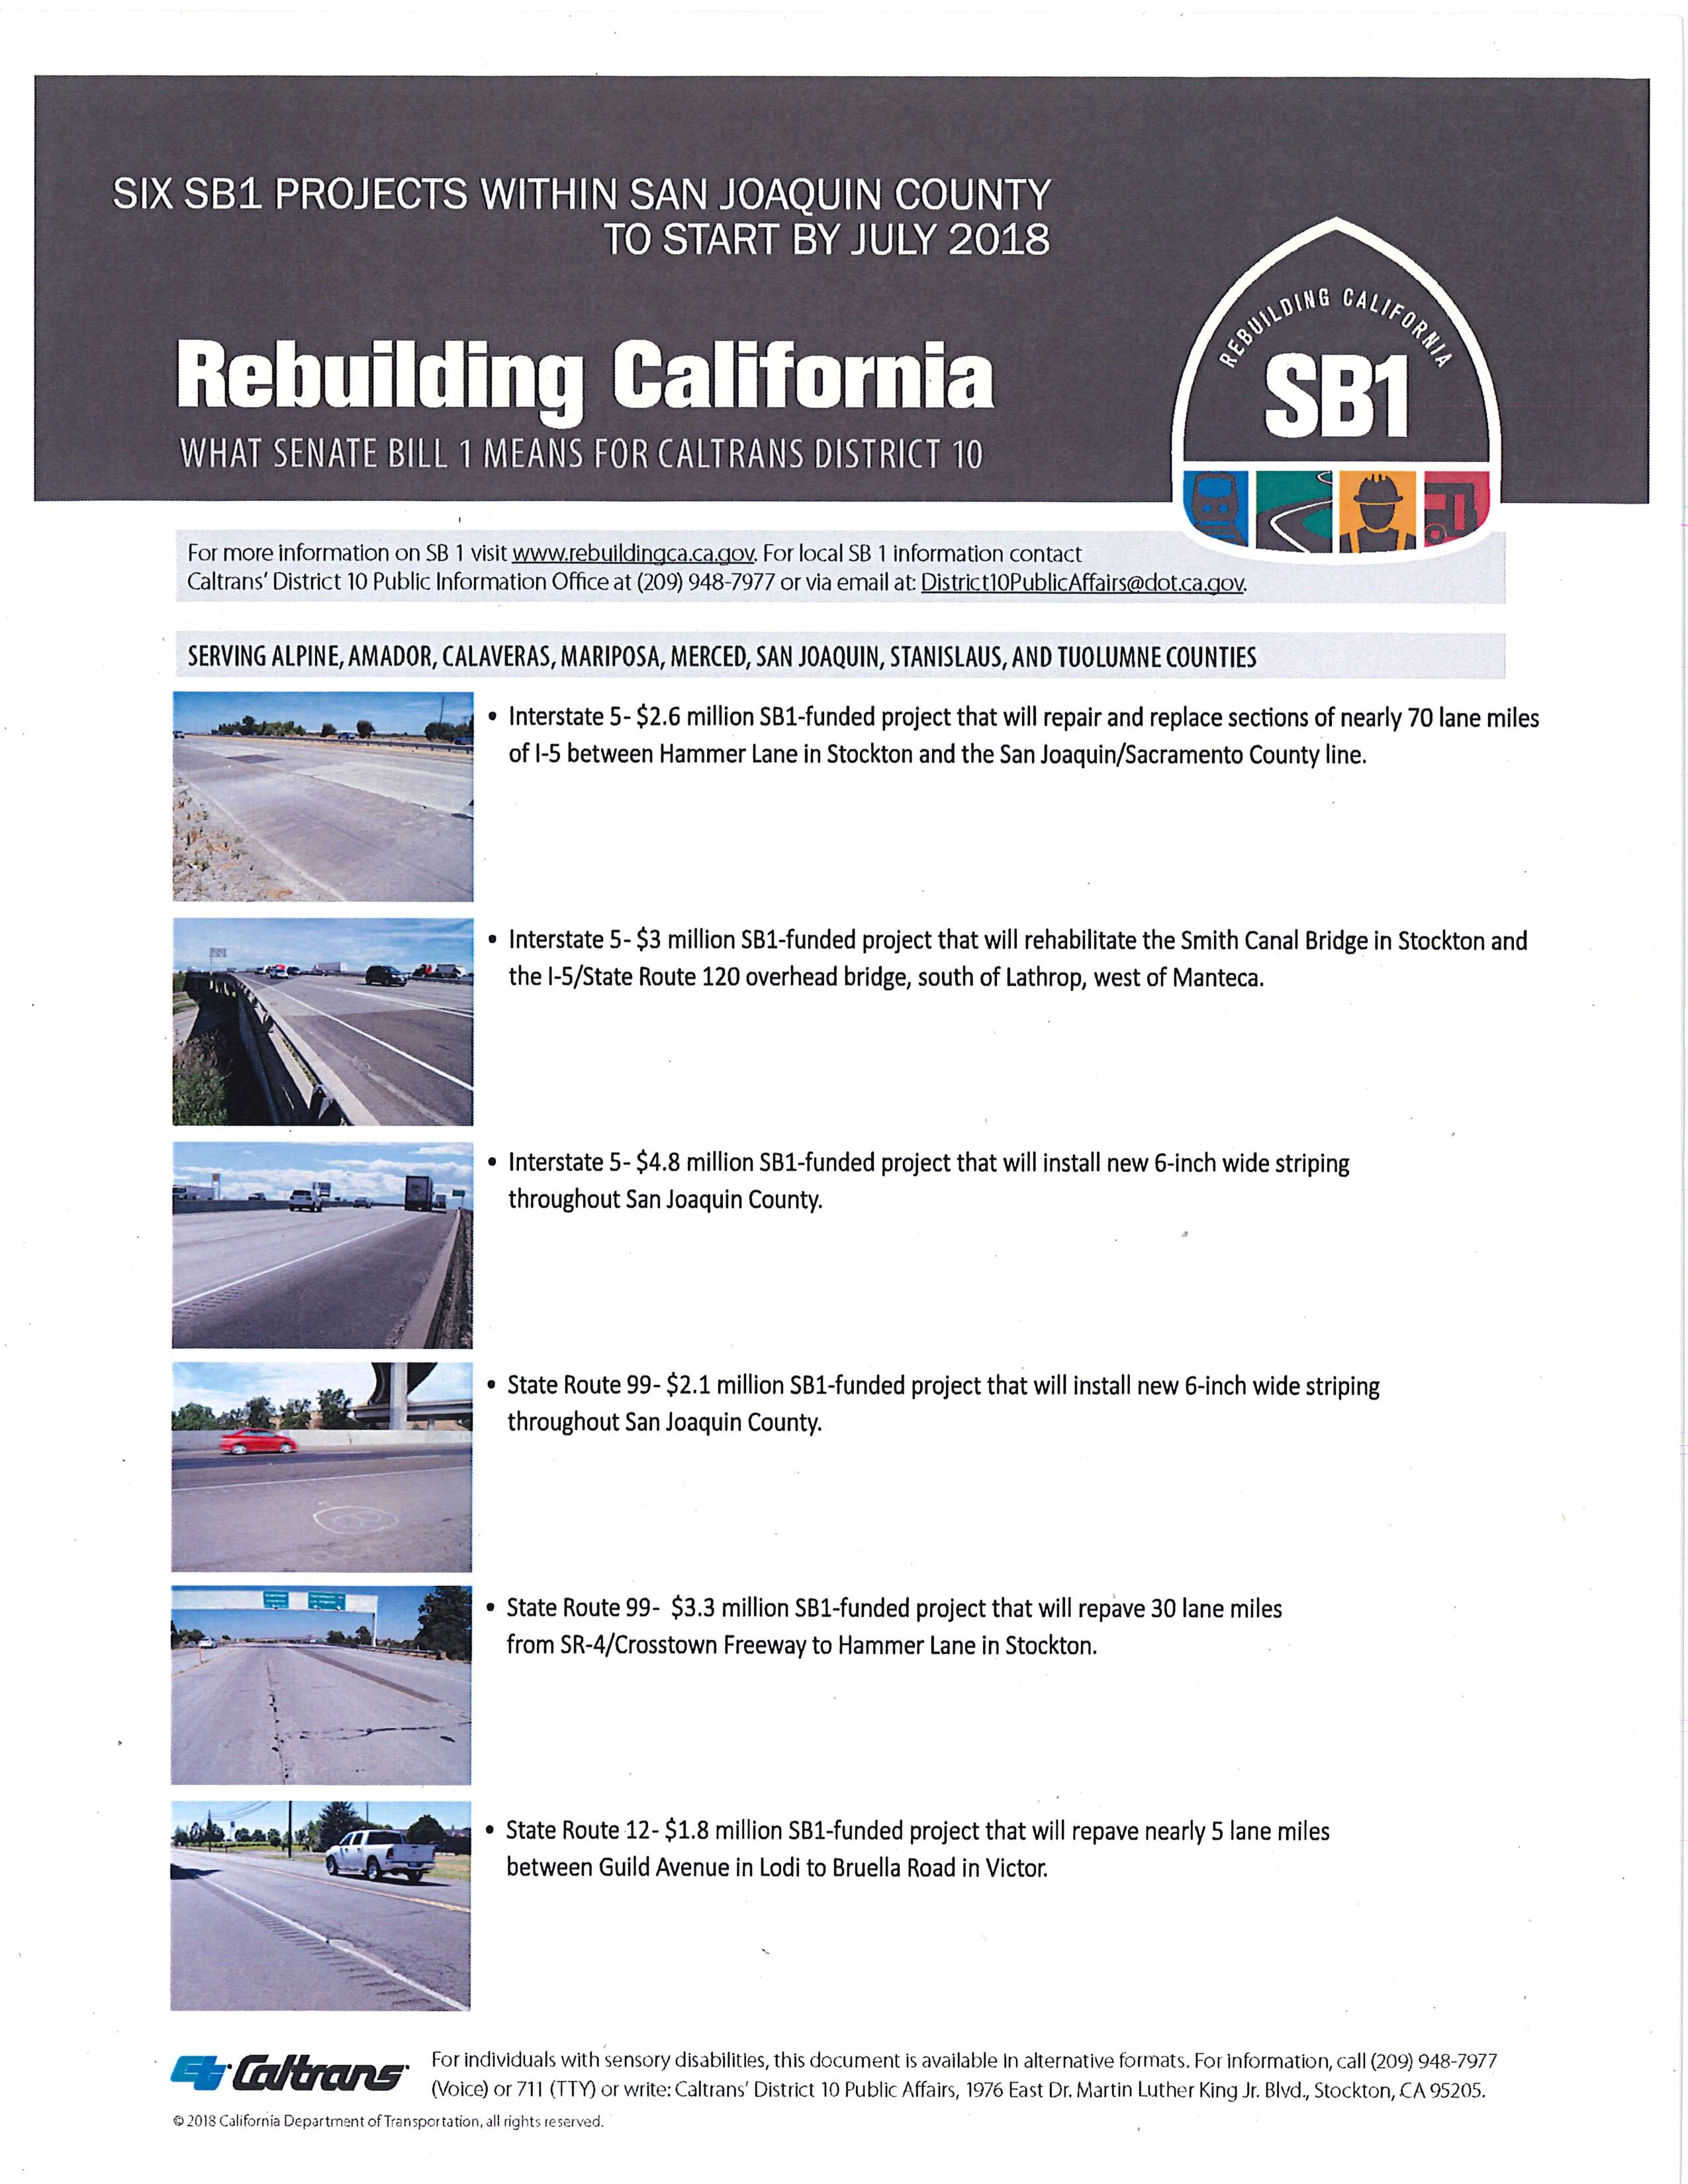 SB 1 funds allow Caltrans to accelerate repairs on I-5 in San